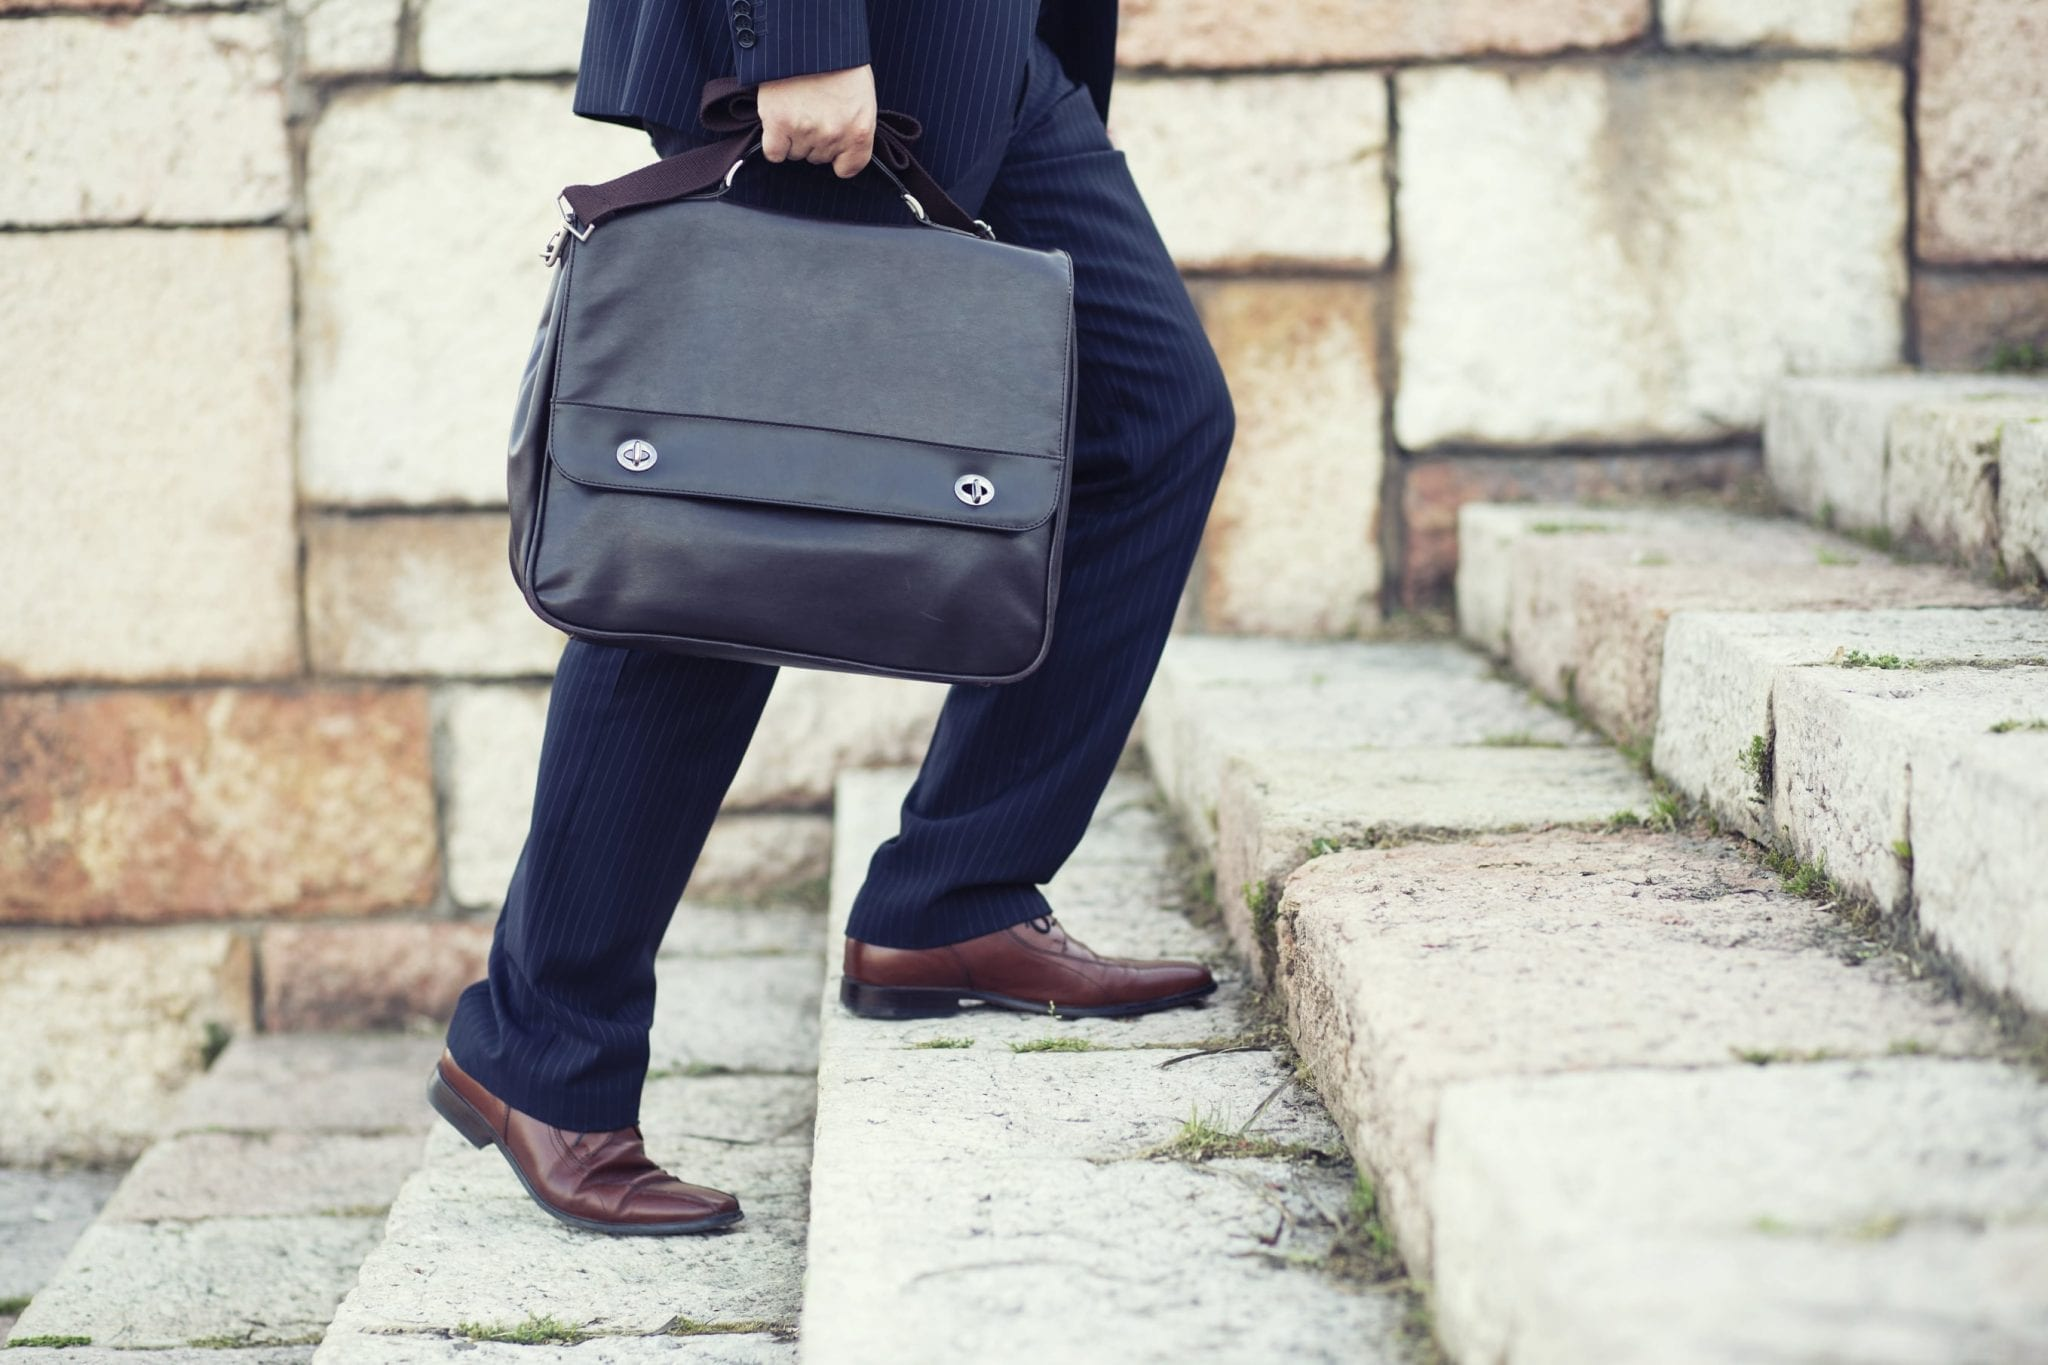 Lawyer In Suit Carrying Legal Briefcase Stock Photo